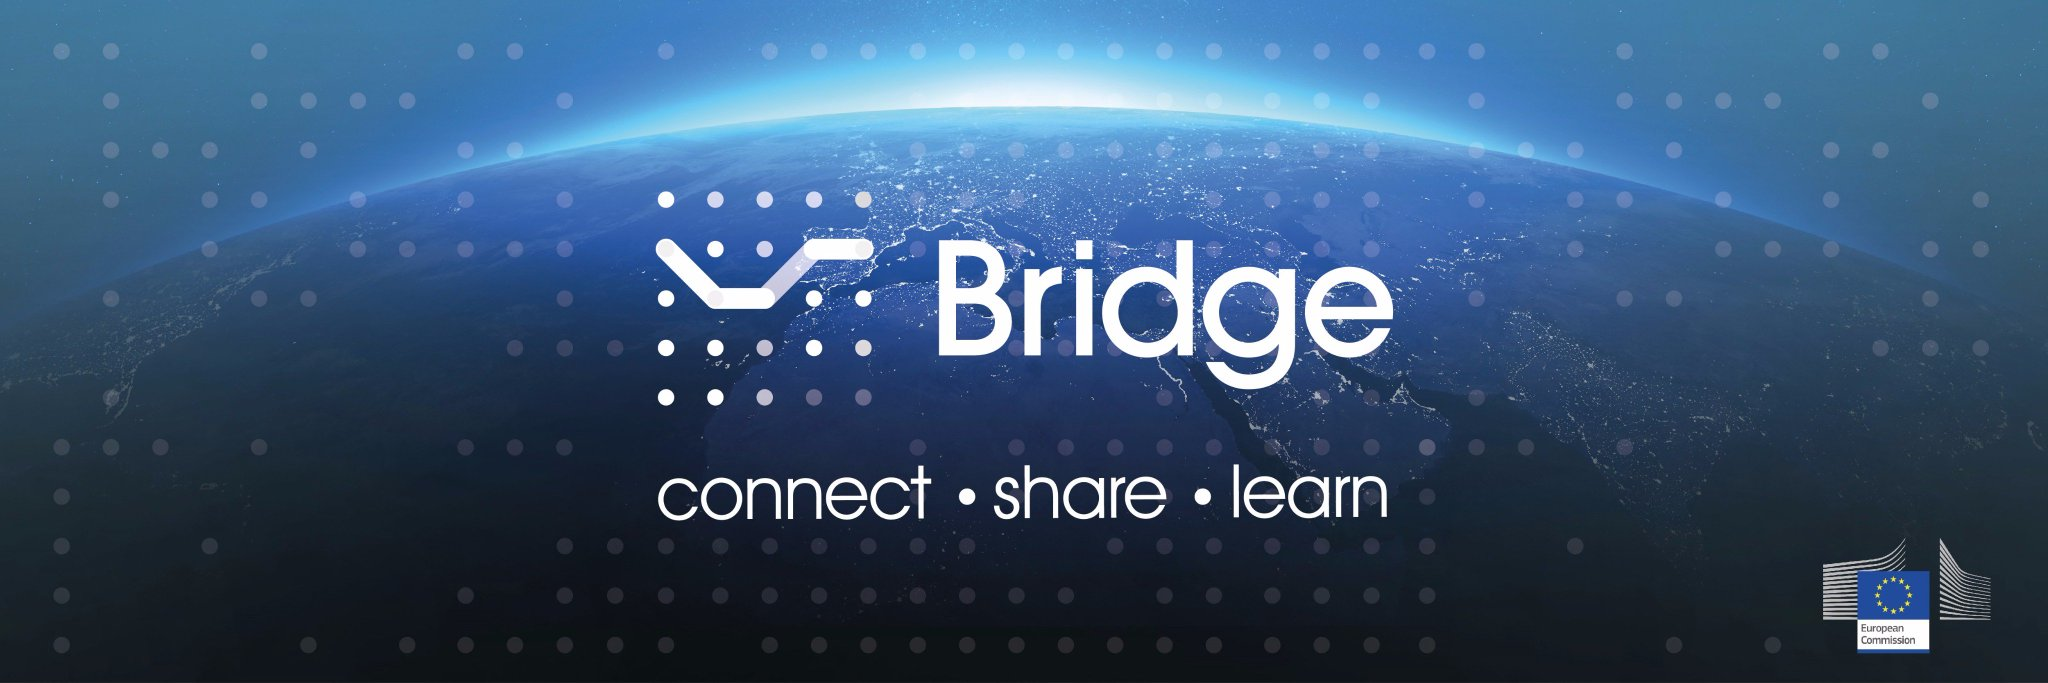 #Bridge_EU is meeting today & tomorrow in Brussels and we are participating in the 4 working groups.More info https://t.co/SqTveUSDu7 #H2020 https://t.co/S1quS6fOLj